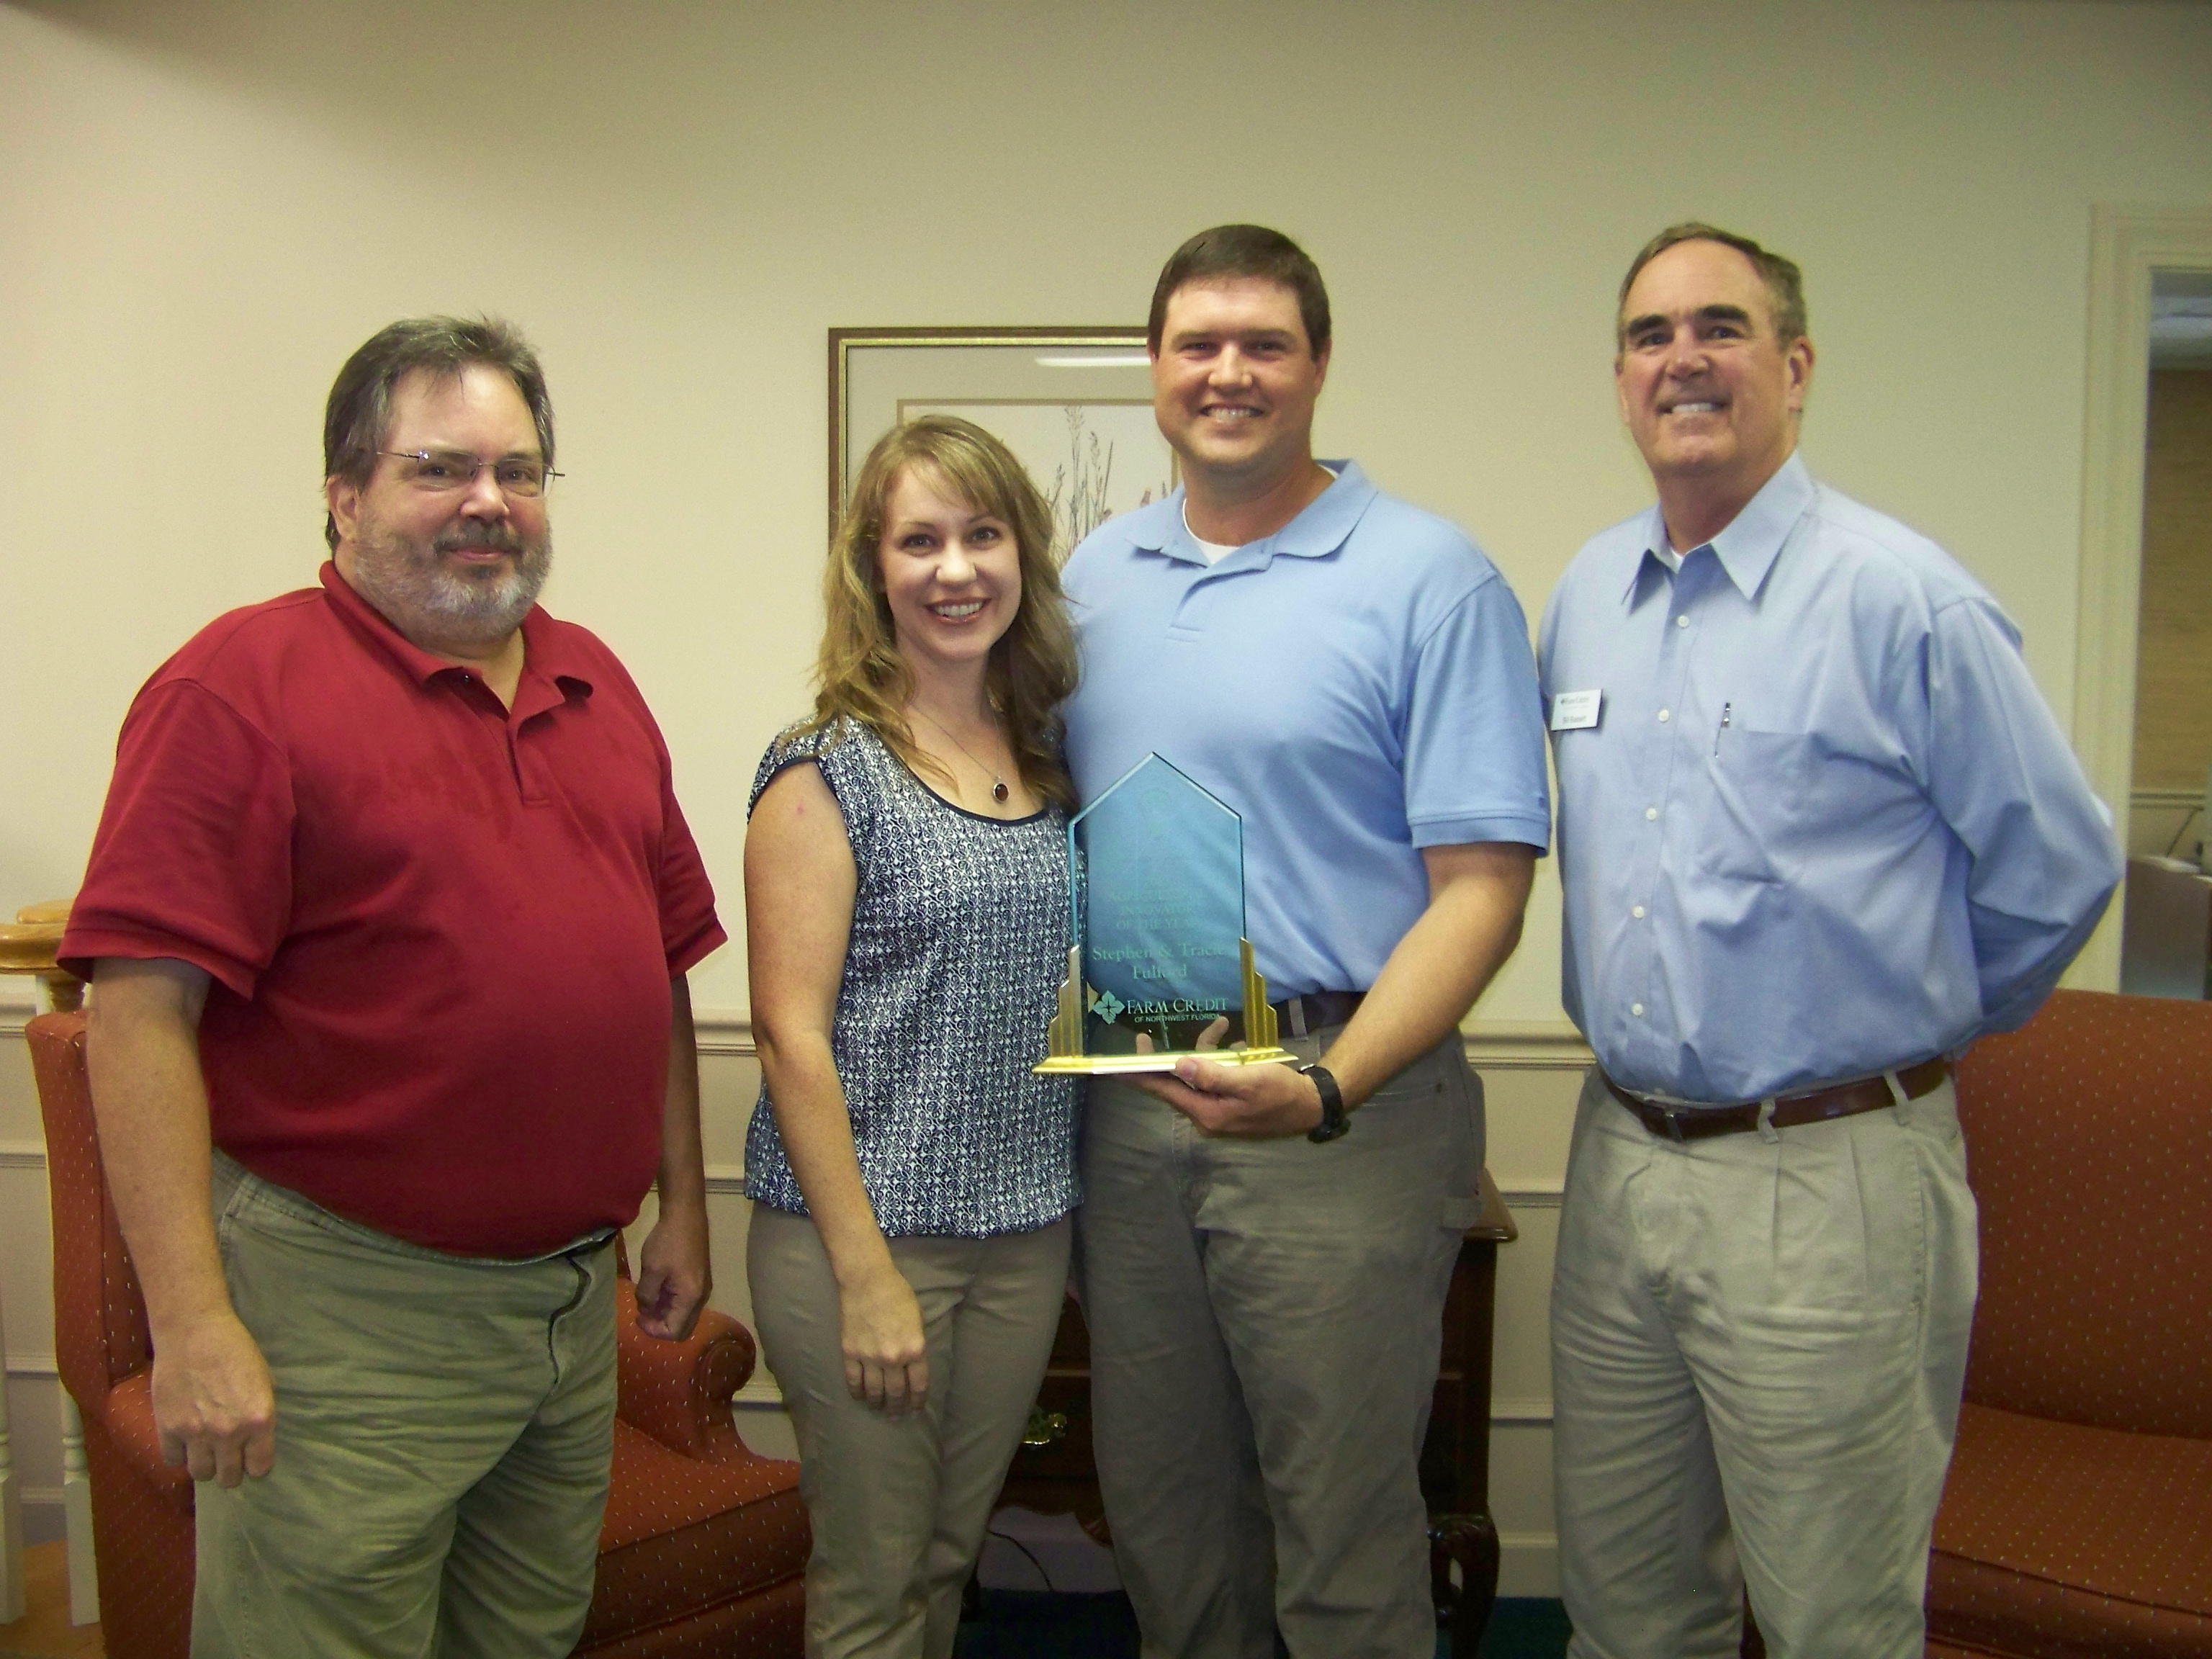 From left: Jed Dillard, Jefferson Co. Extension, Tracie and Stephen Fulford, Bill Bassett, Northwest Florida Farm Credit